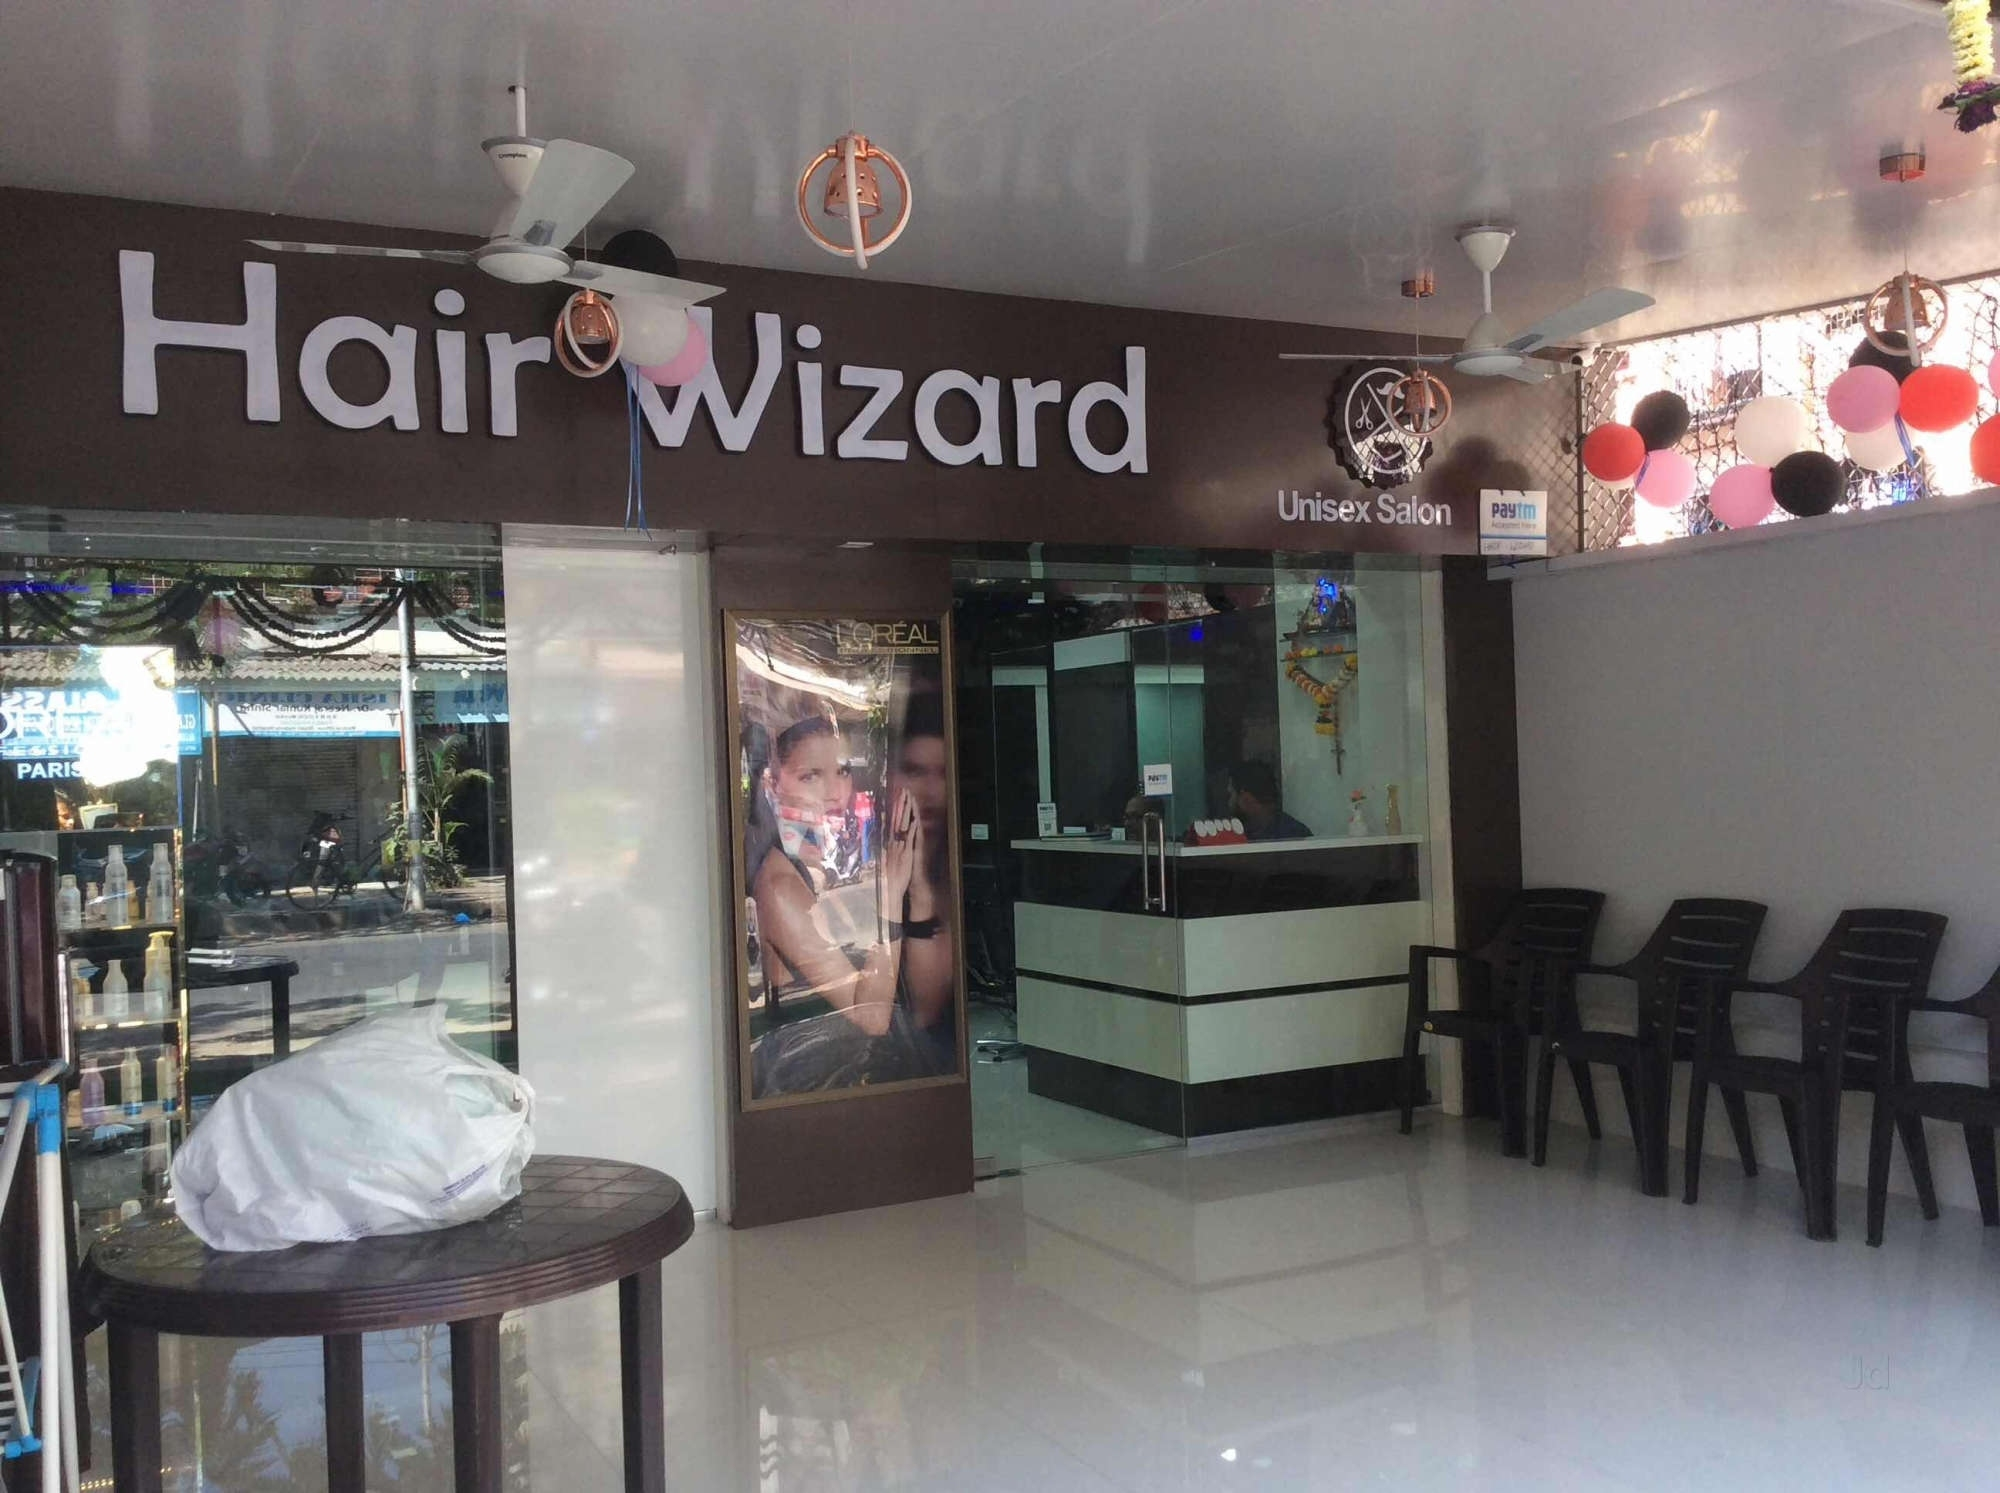 Hair Wizard Unisex Salon Photos, Mira Road, Mumbai- Pictures in Haircut Salon In Mira Road